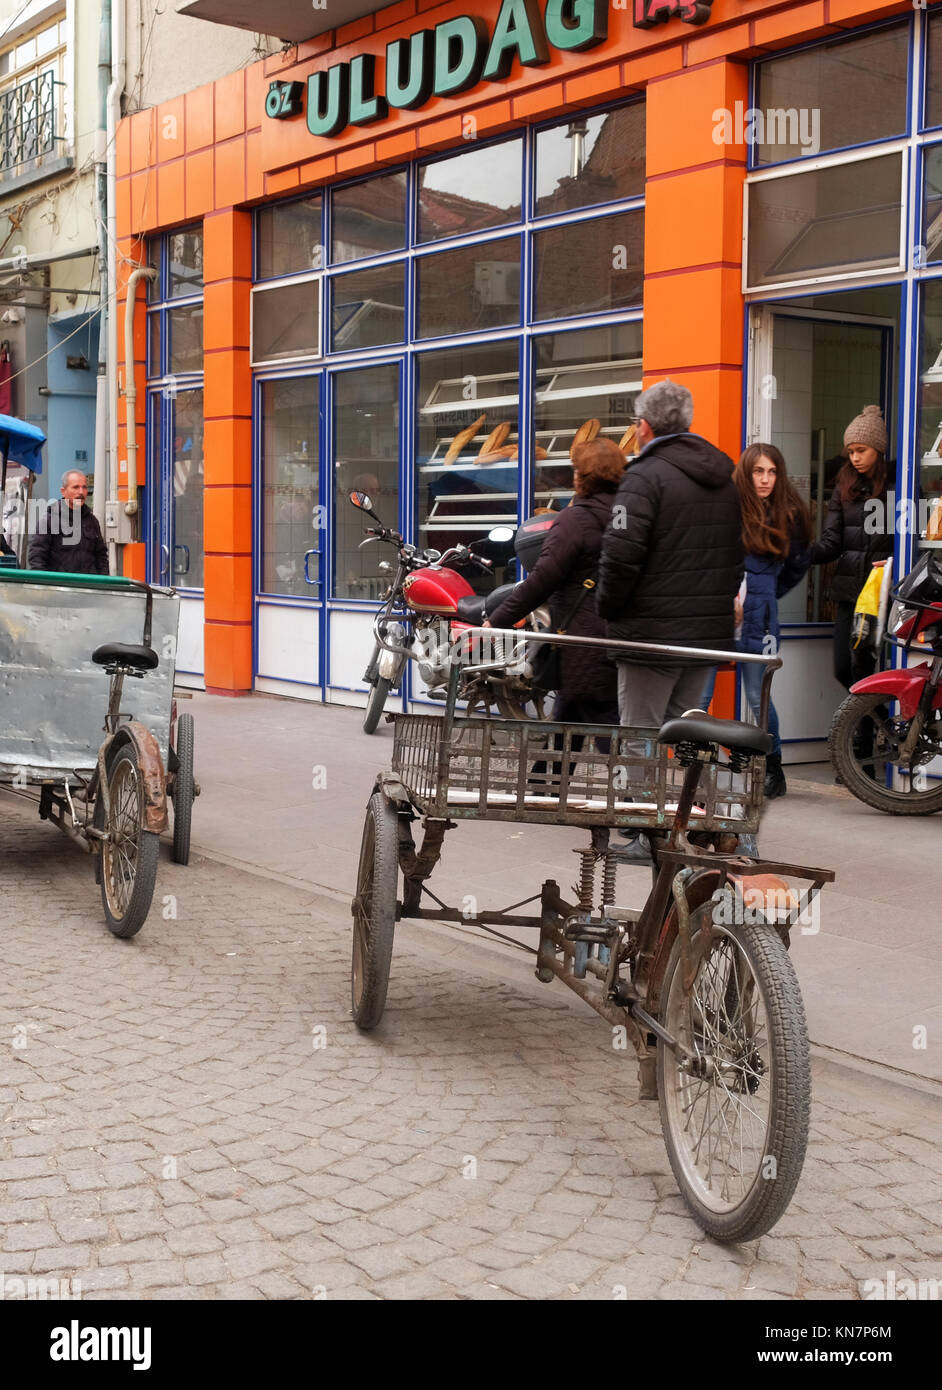 December 2017 - Tricycle cargo bikes parked in a street in Turkey Stock Photo